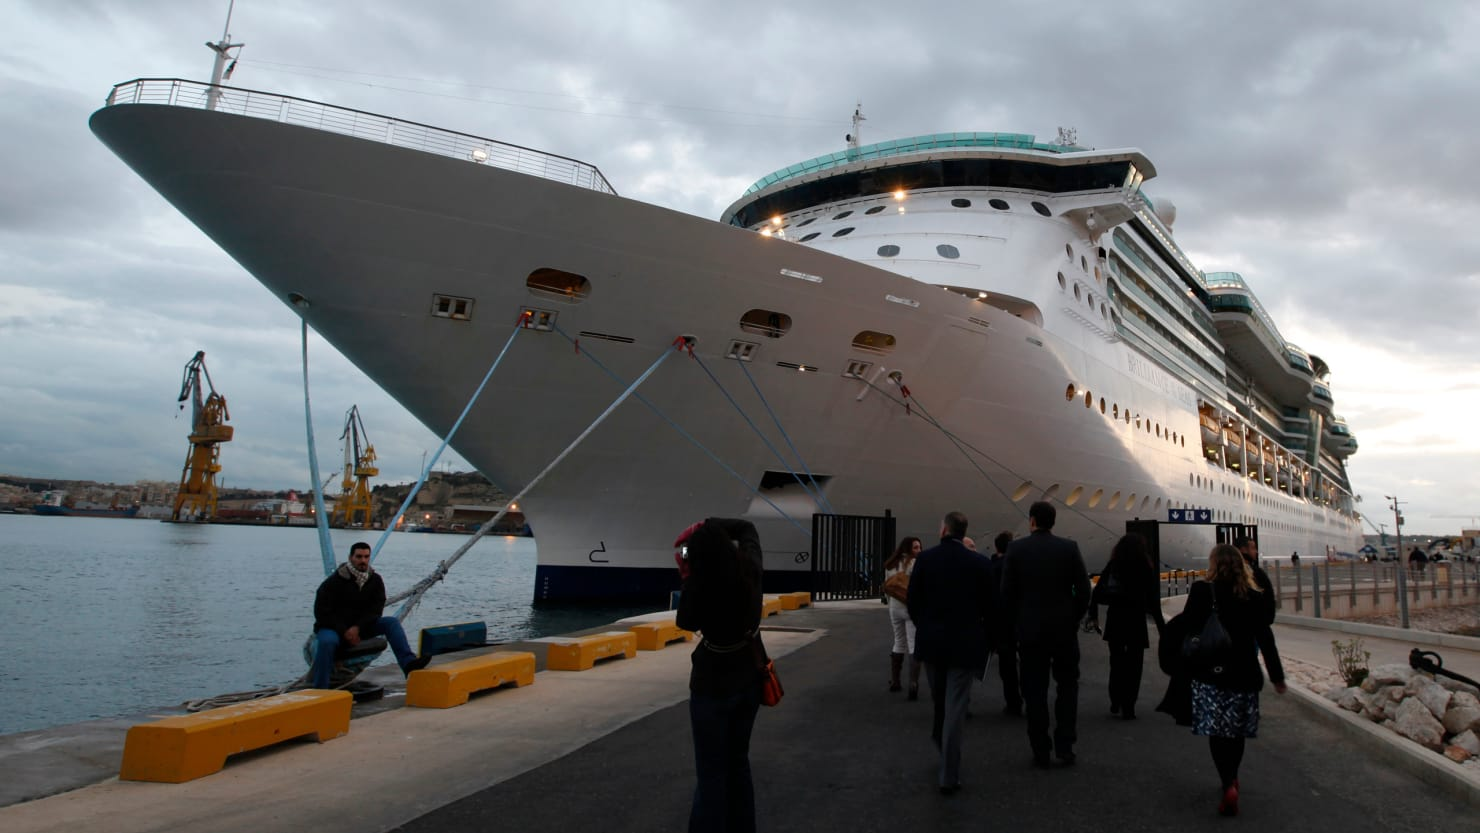 Nearly 300 Passengers Fall Ill On Cruise Ship After Norovirus Outbreak